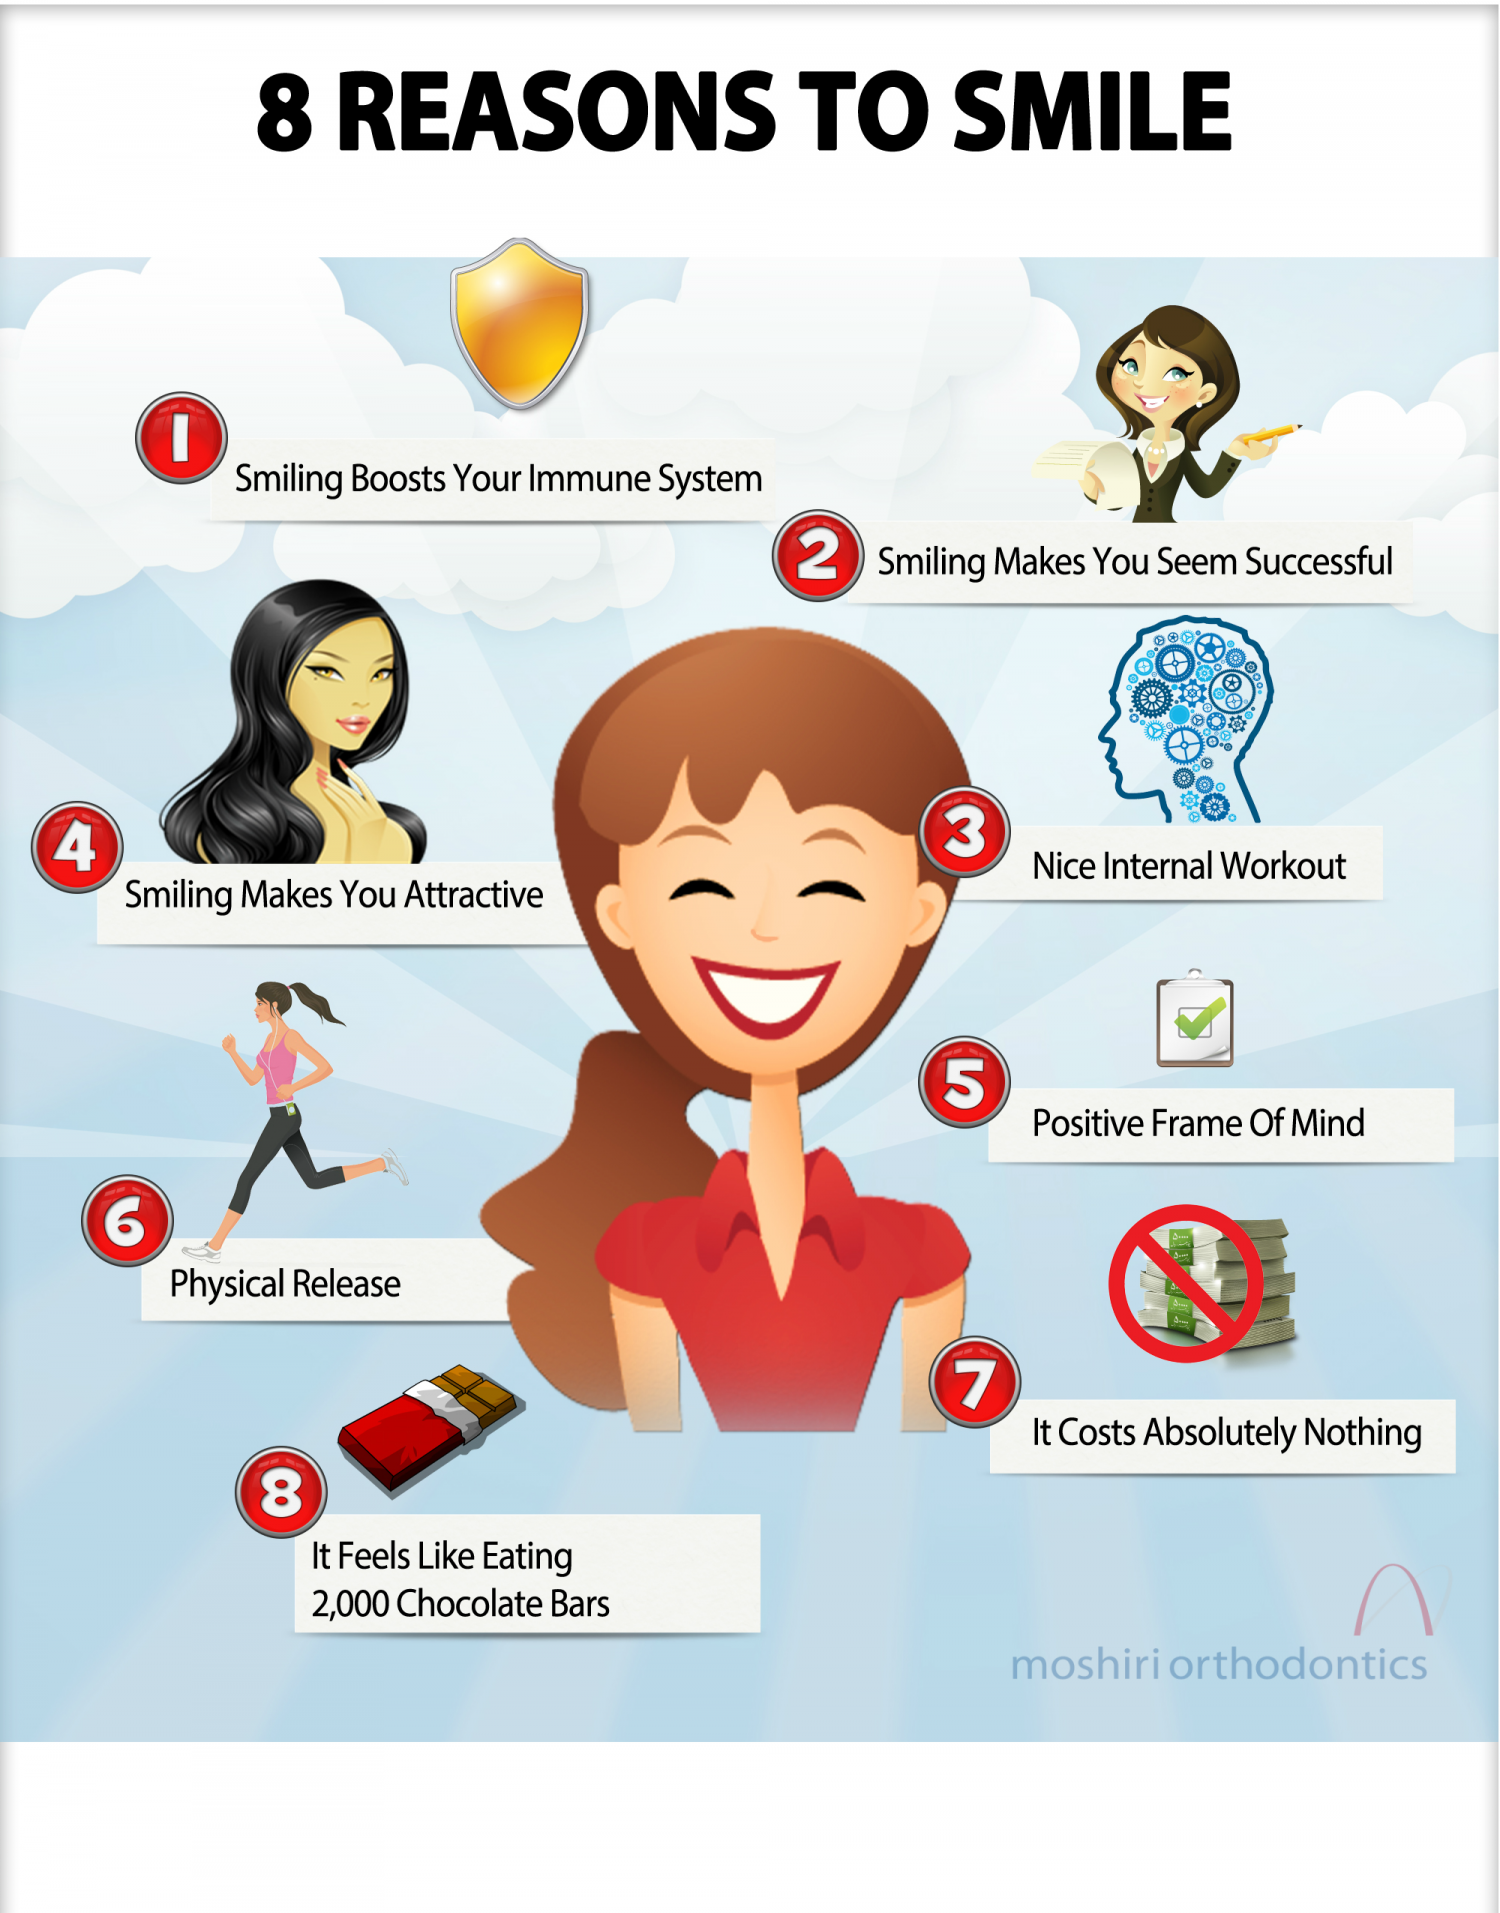 8 Reasons To Smile! Infographic